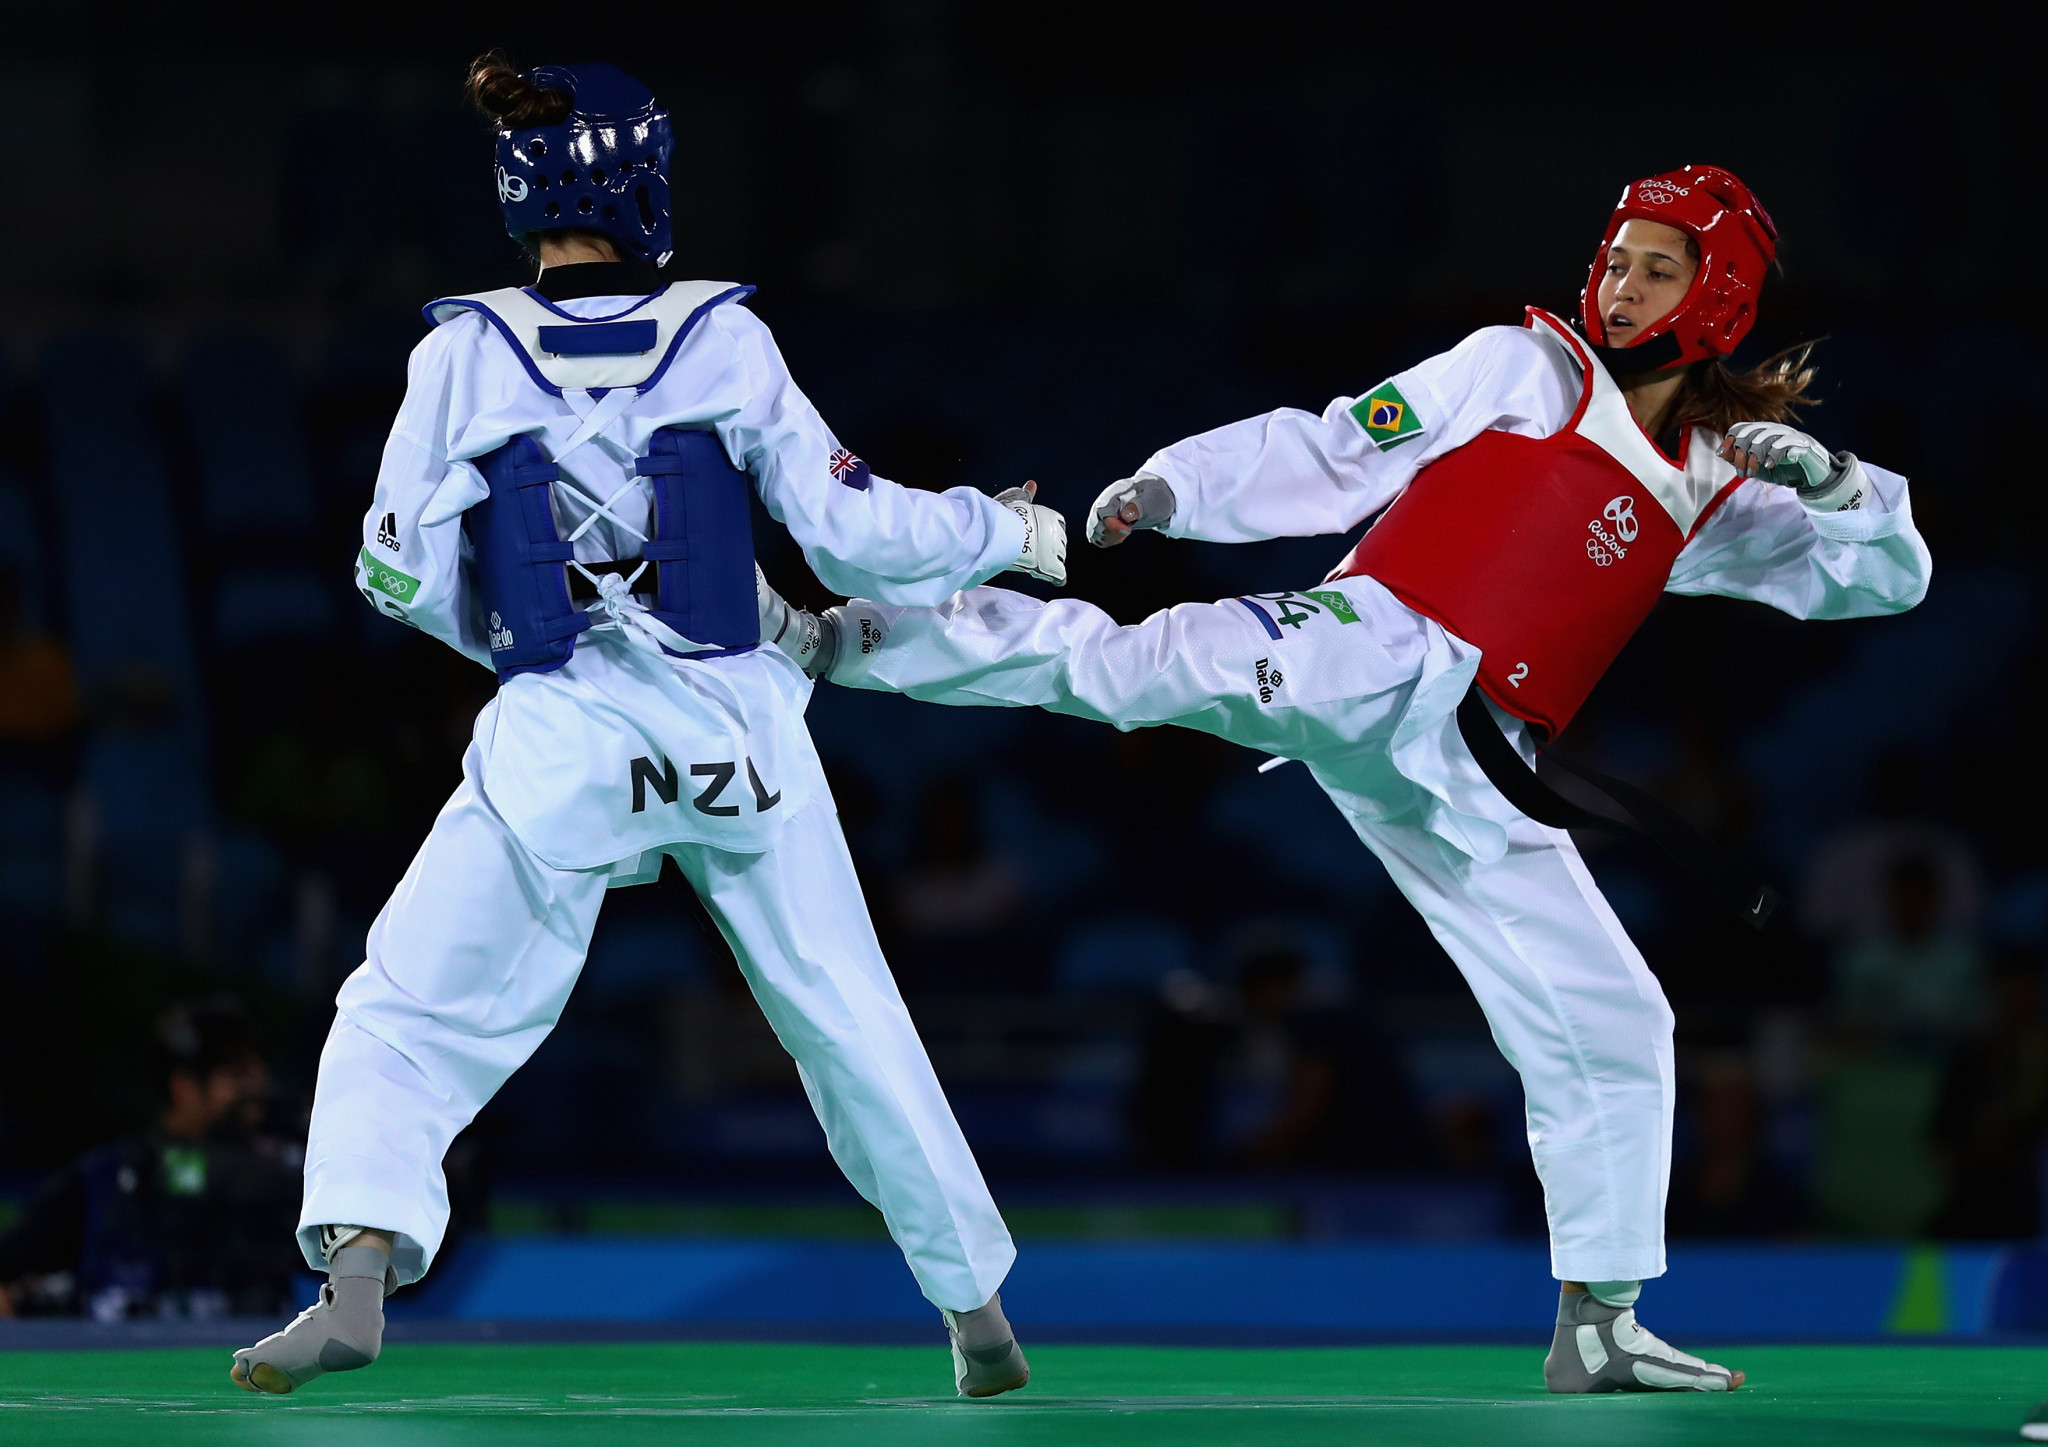 Taekwondo in New Zealand has been hit by governance issues ©Getty Images